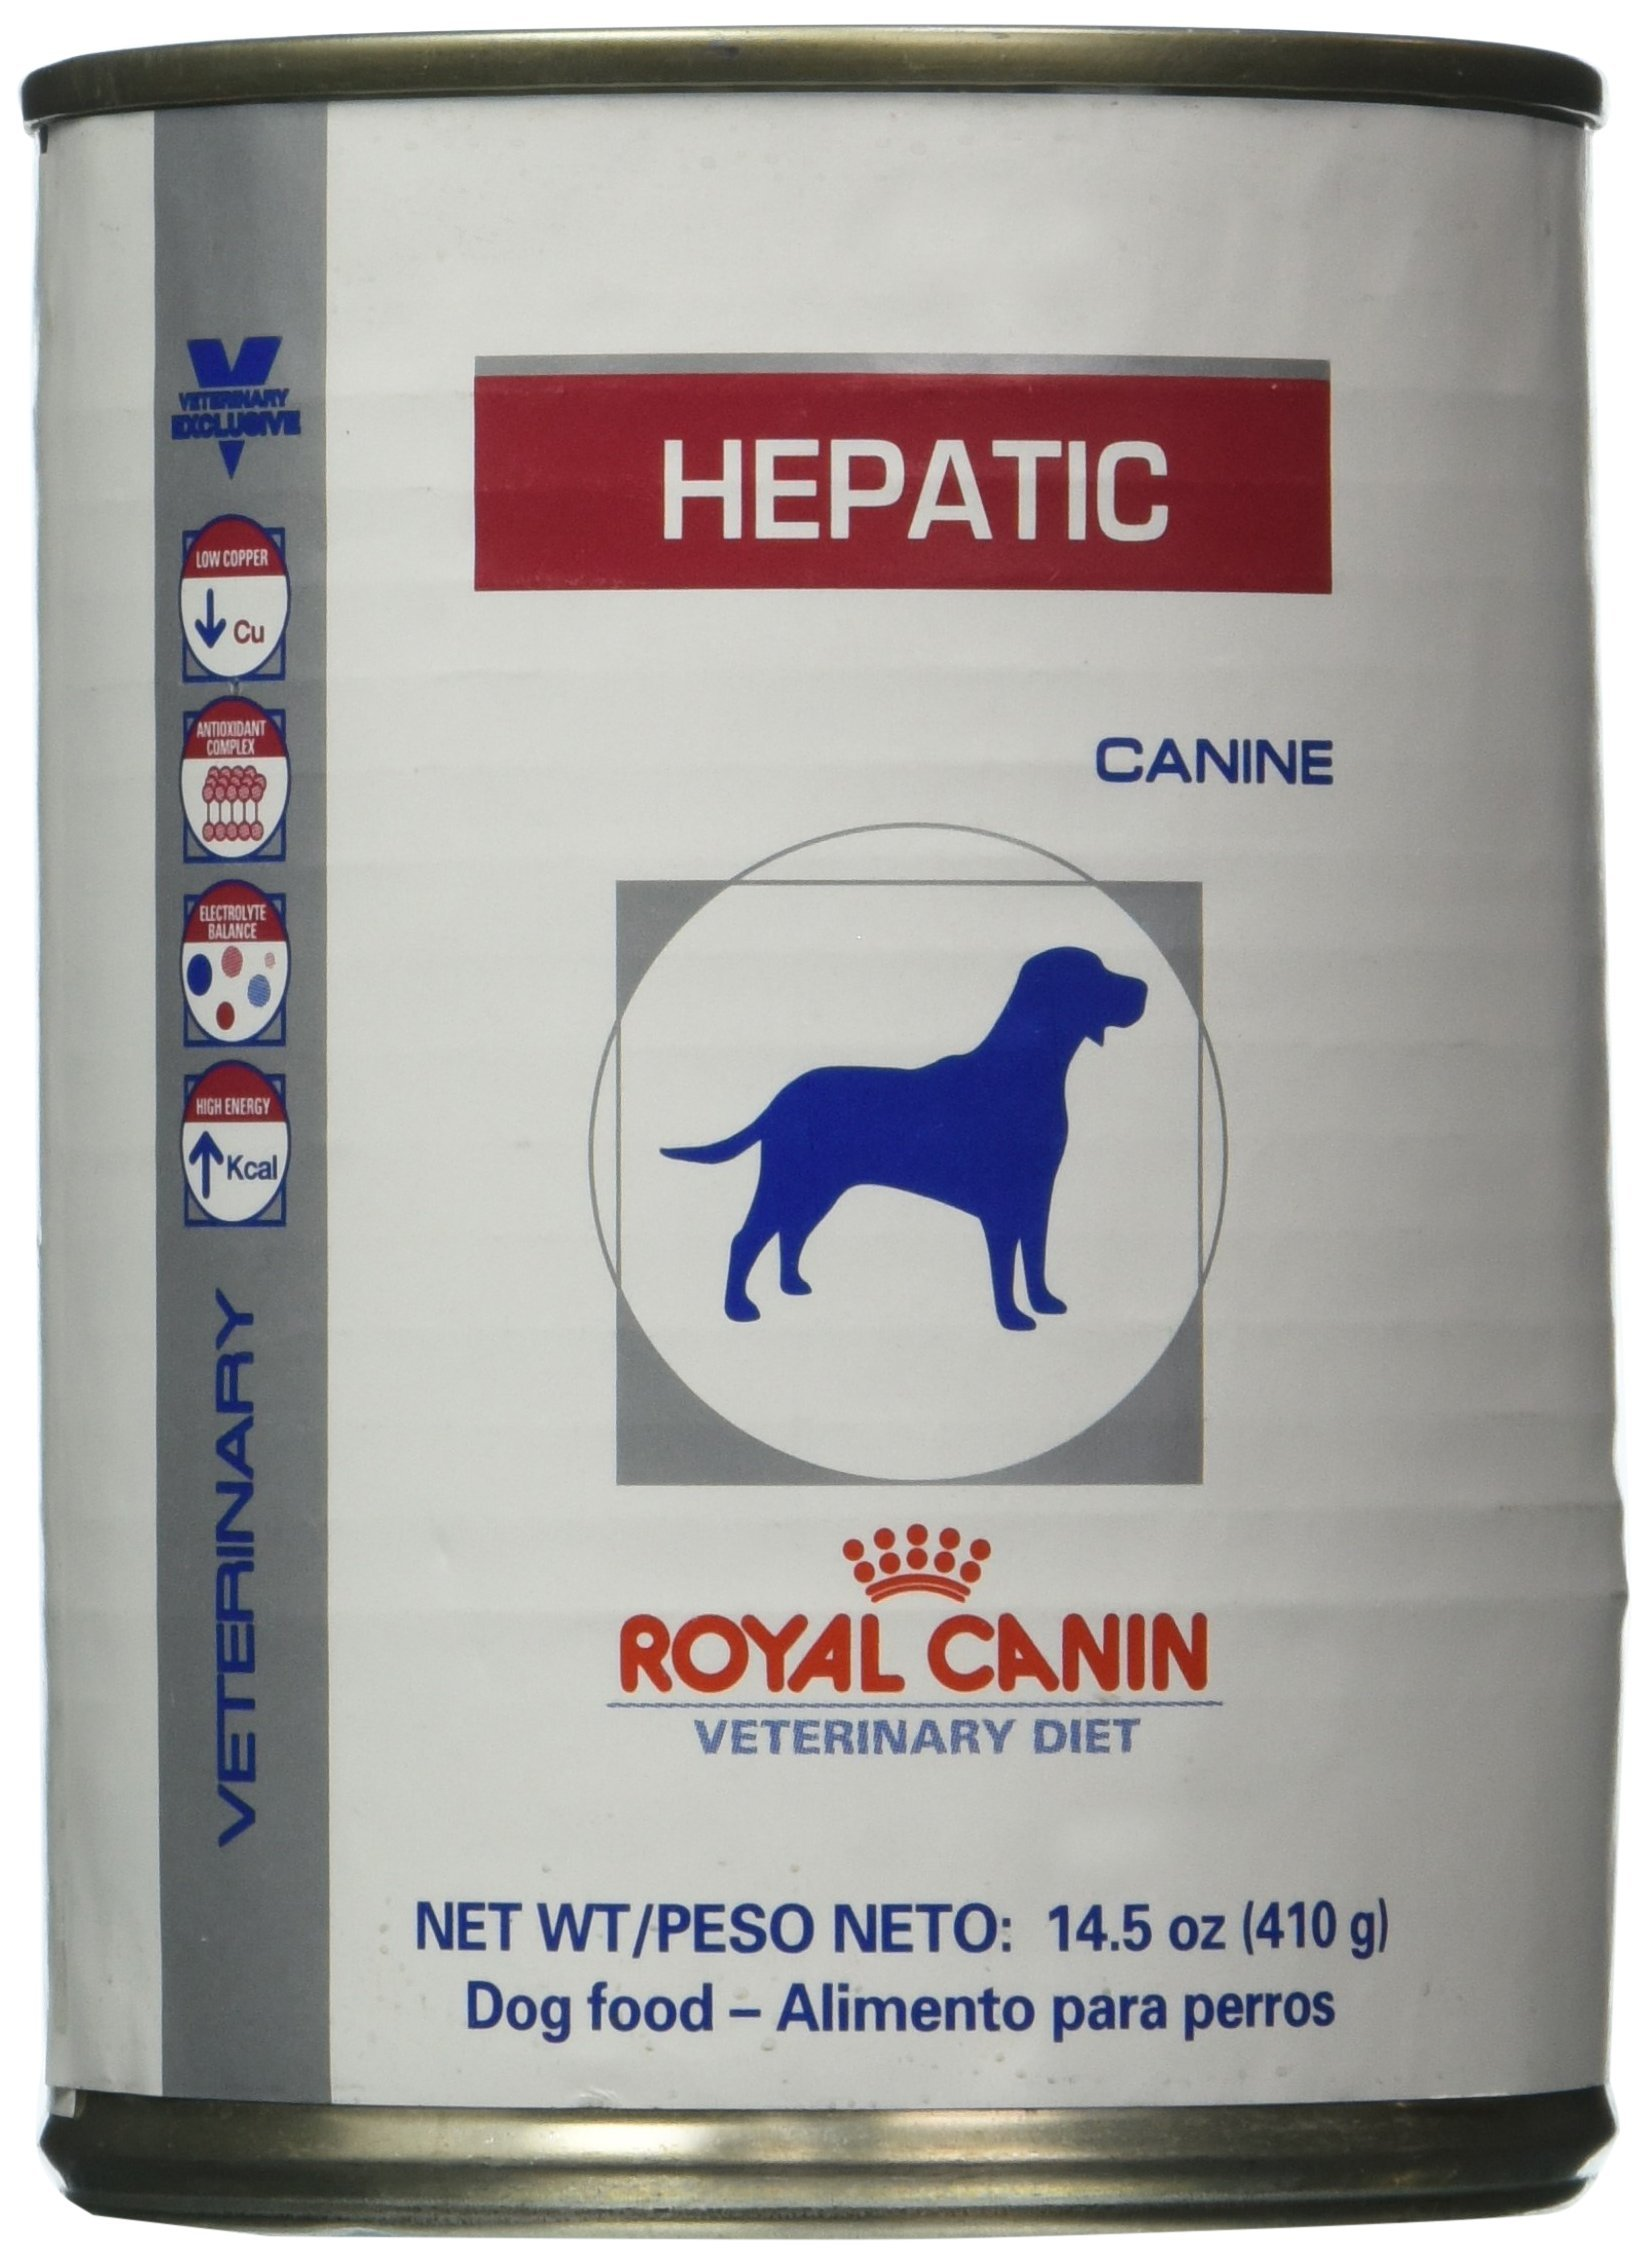 Royal Canin Veterinary Diet Hepatic canned dog food 24 14.4 oz